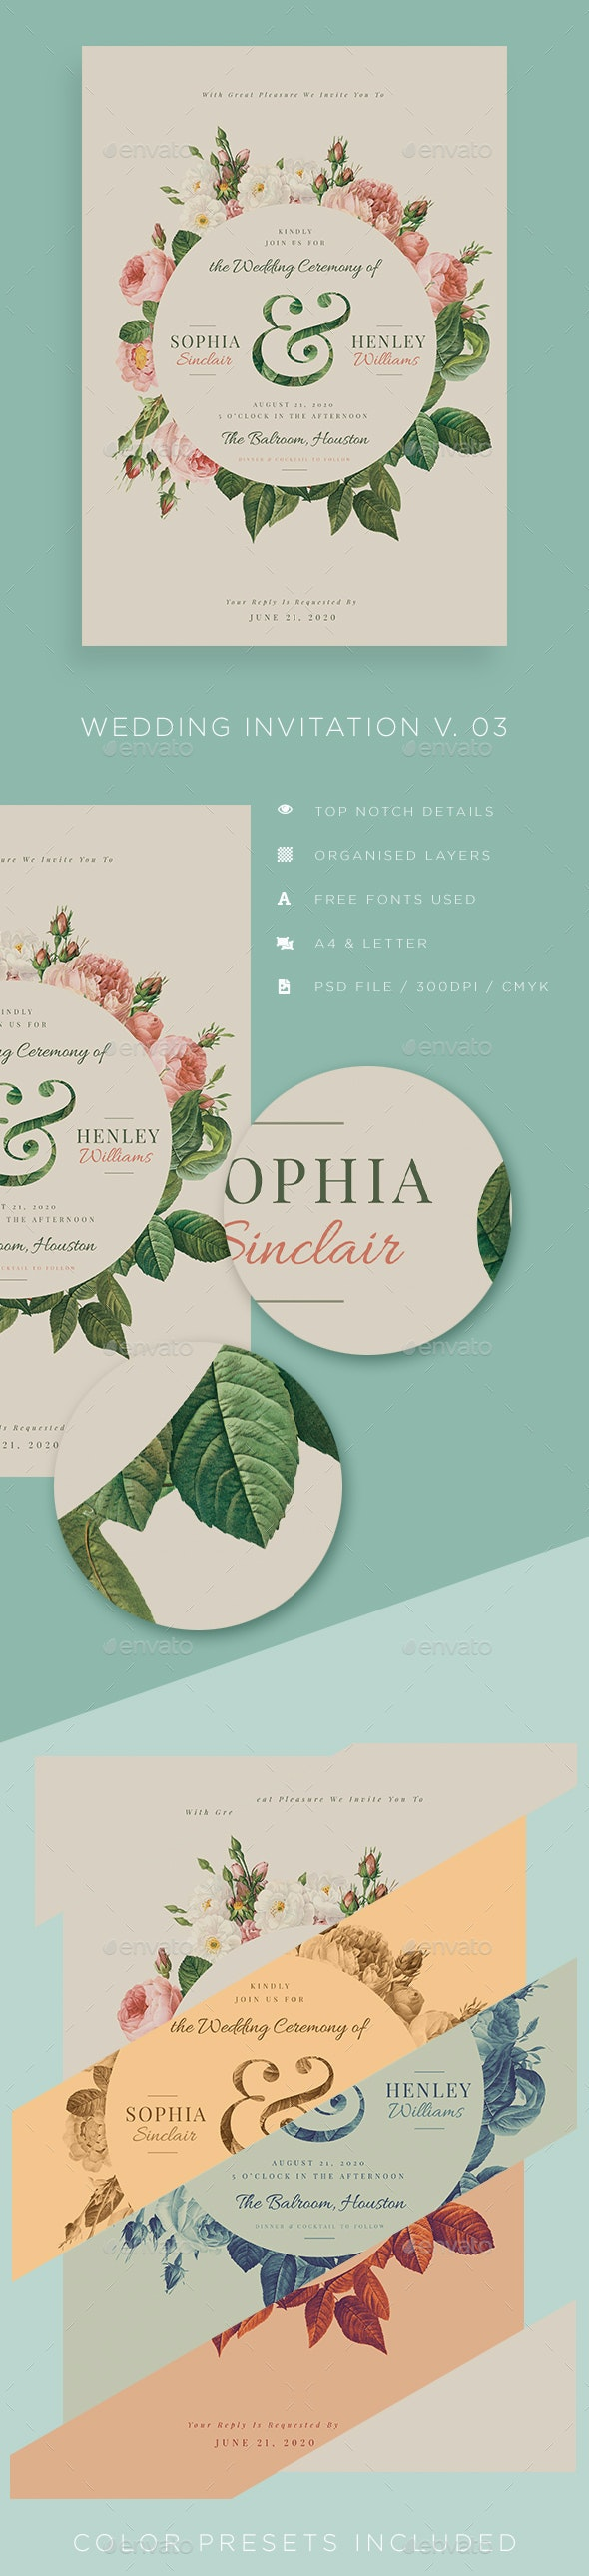 Wedding Invitation V03 - Cards & Invites Print Templates